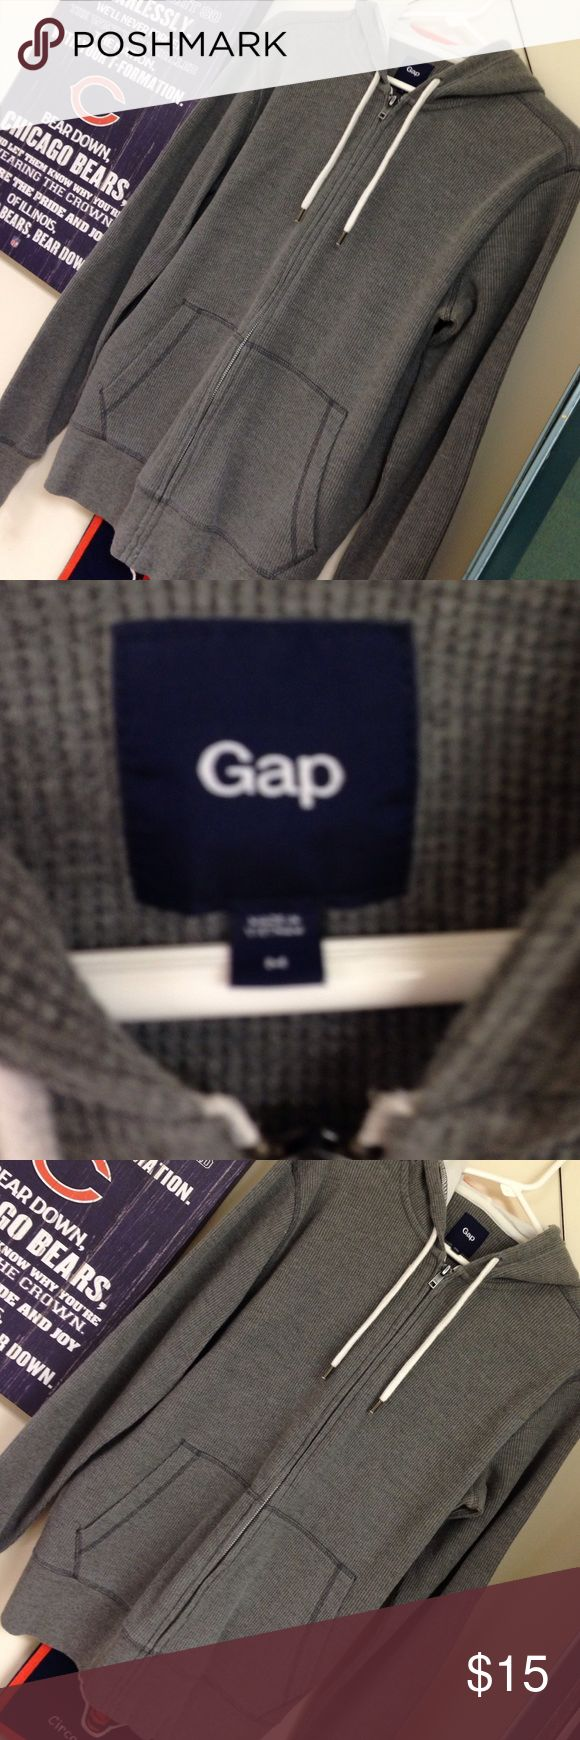 Gap men's hoodie zip up Gap men's thermal zip up hoodie. Like new condition. Worn only a couple of times. GAP Jackets & Coats Lightweight & Shirt Jackets